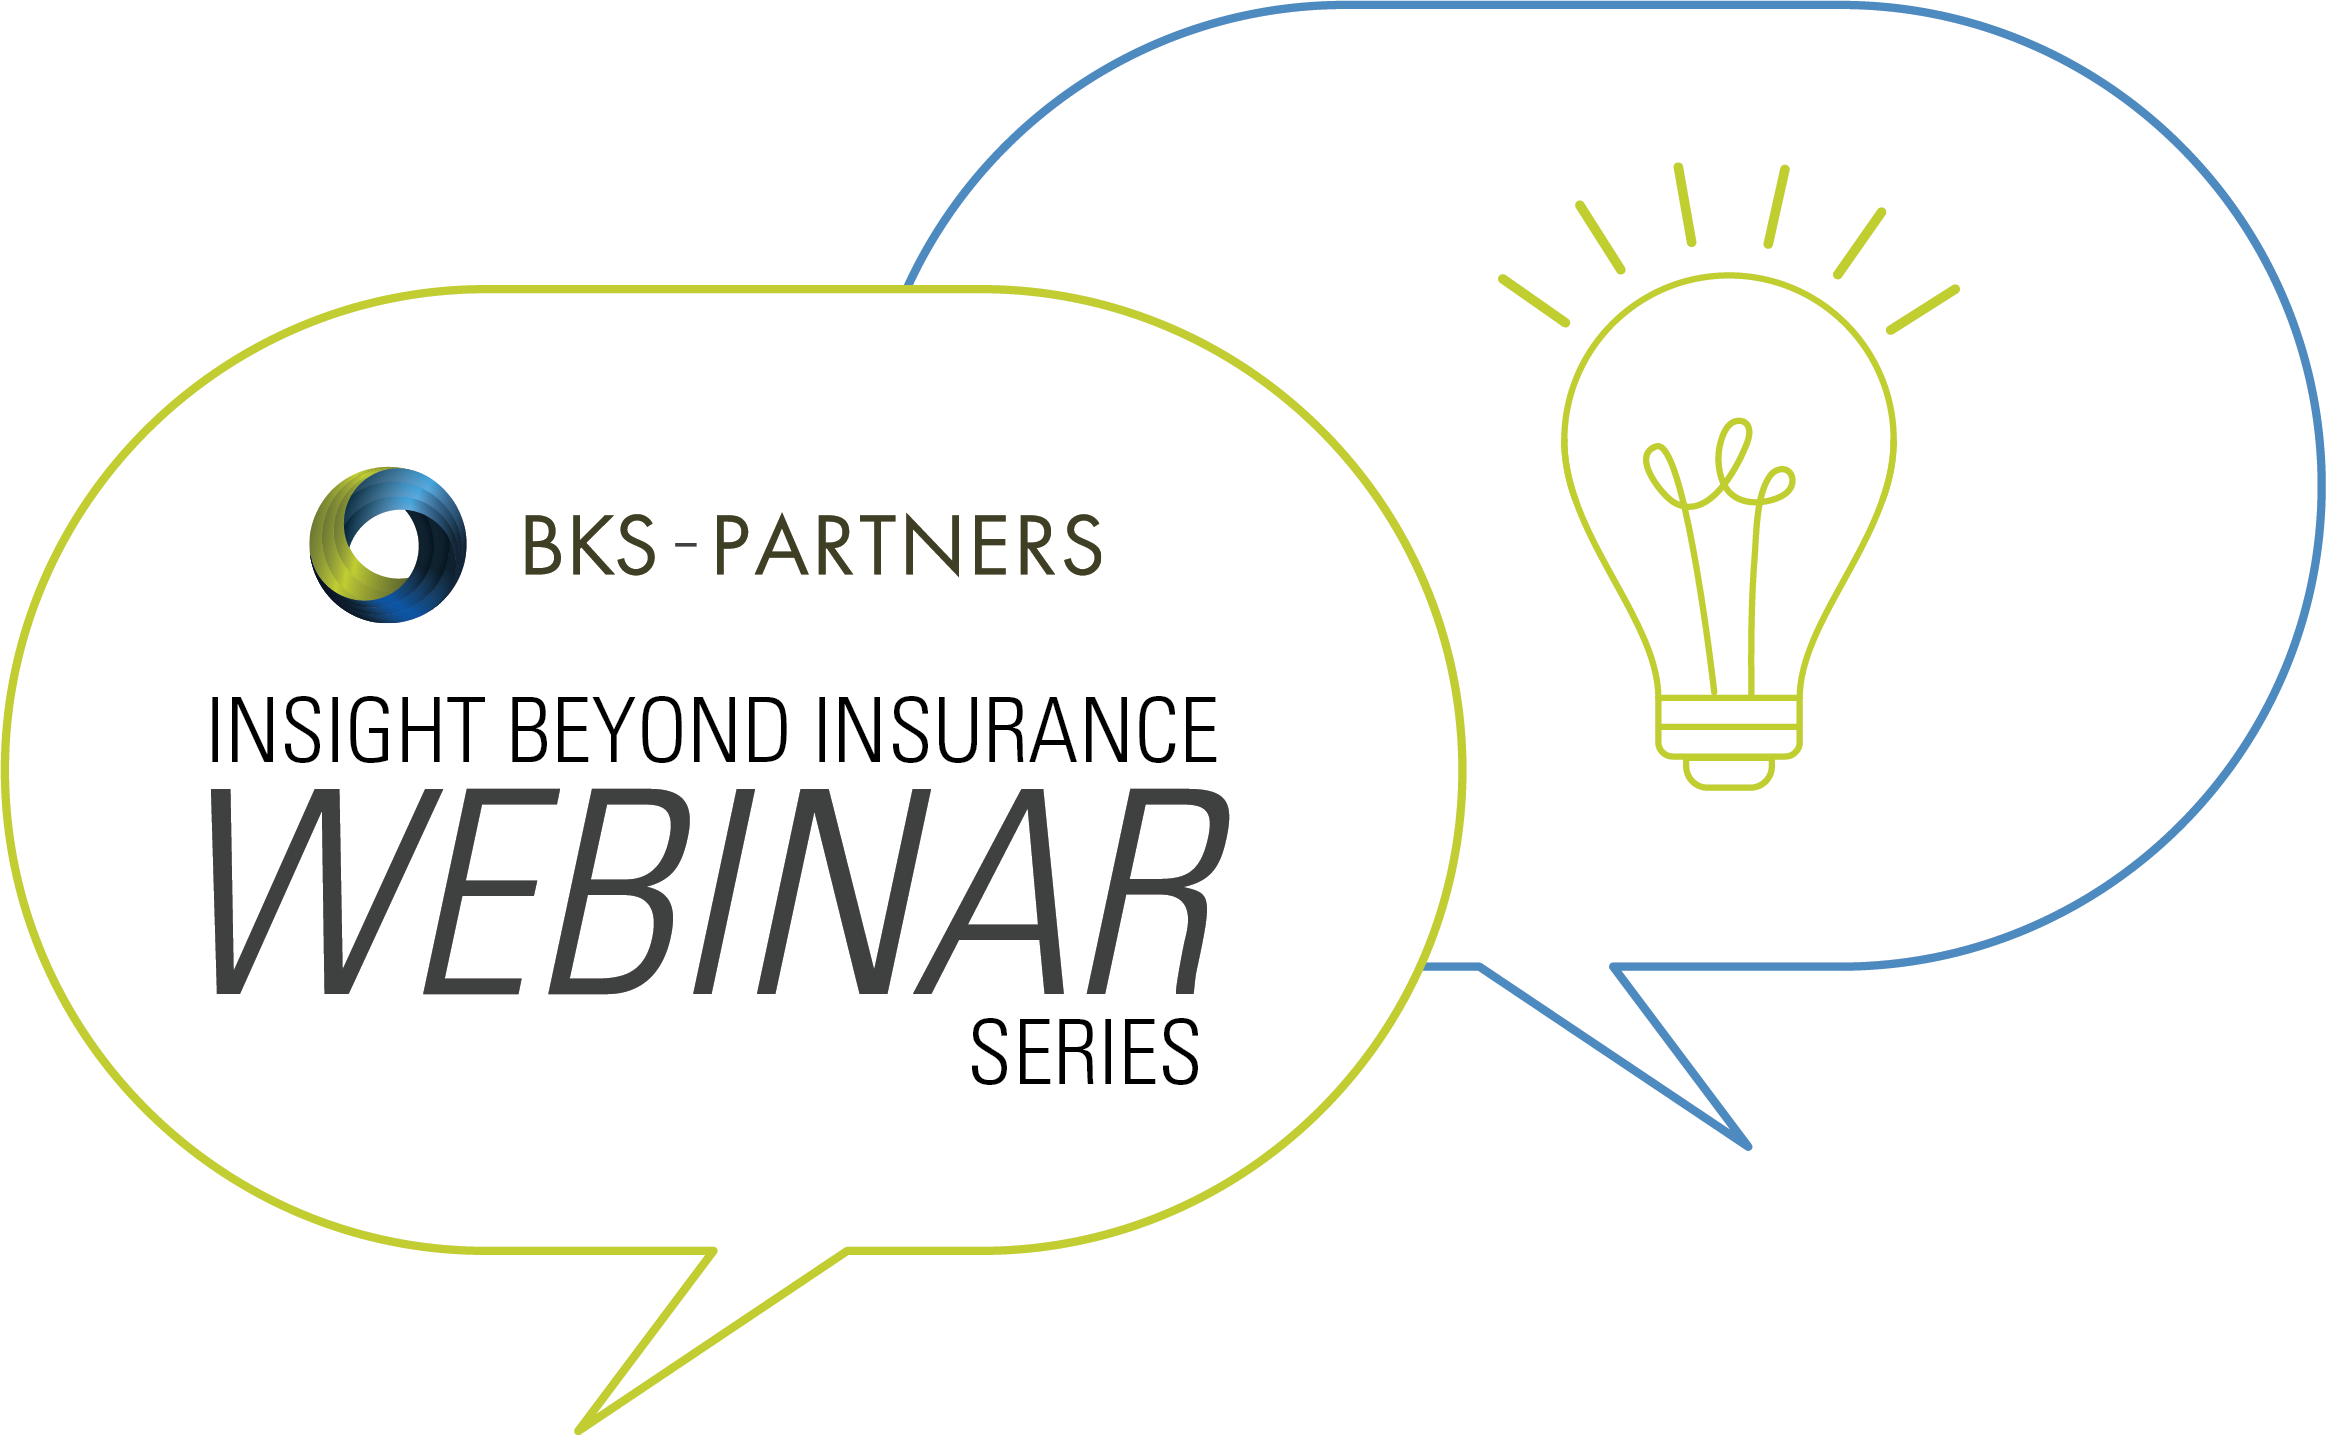 BKS Partners insight beyond insurance webinar series logo with light bulb icon and blue and green chat bubble icons